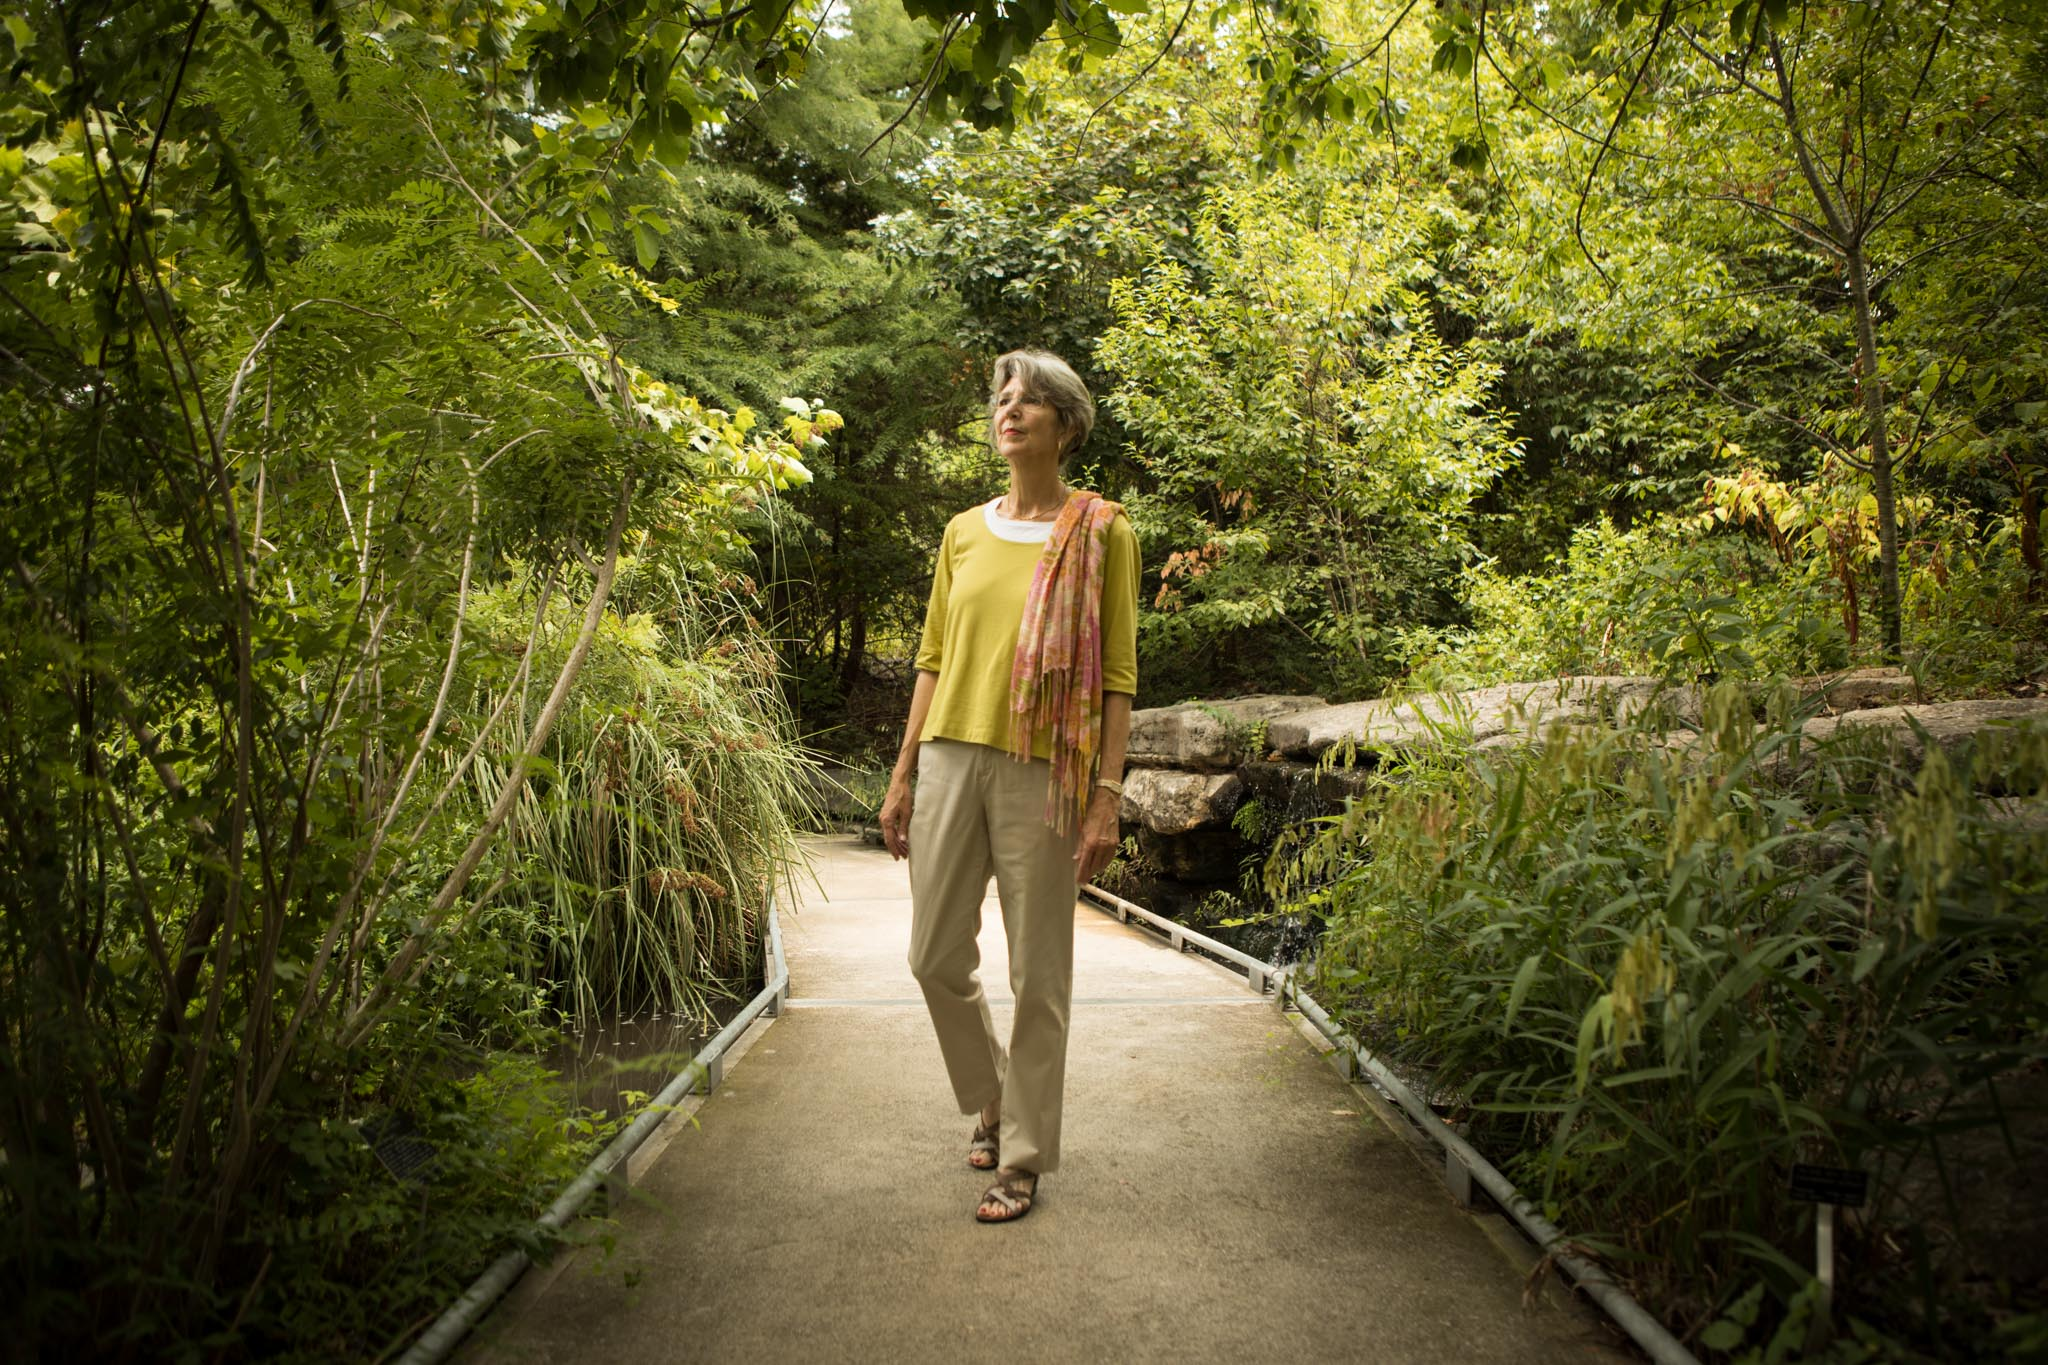 San Antonio Botanical Garden Society, Inc. Former Director of Community Relations and Visitor Services Candace Andrews walks through Hill Country Seep in the San Antonio Botanical Garden.